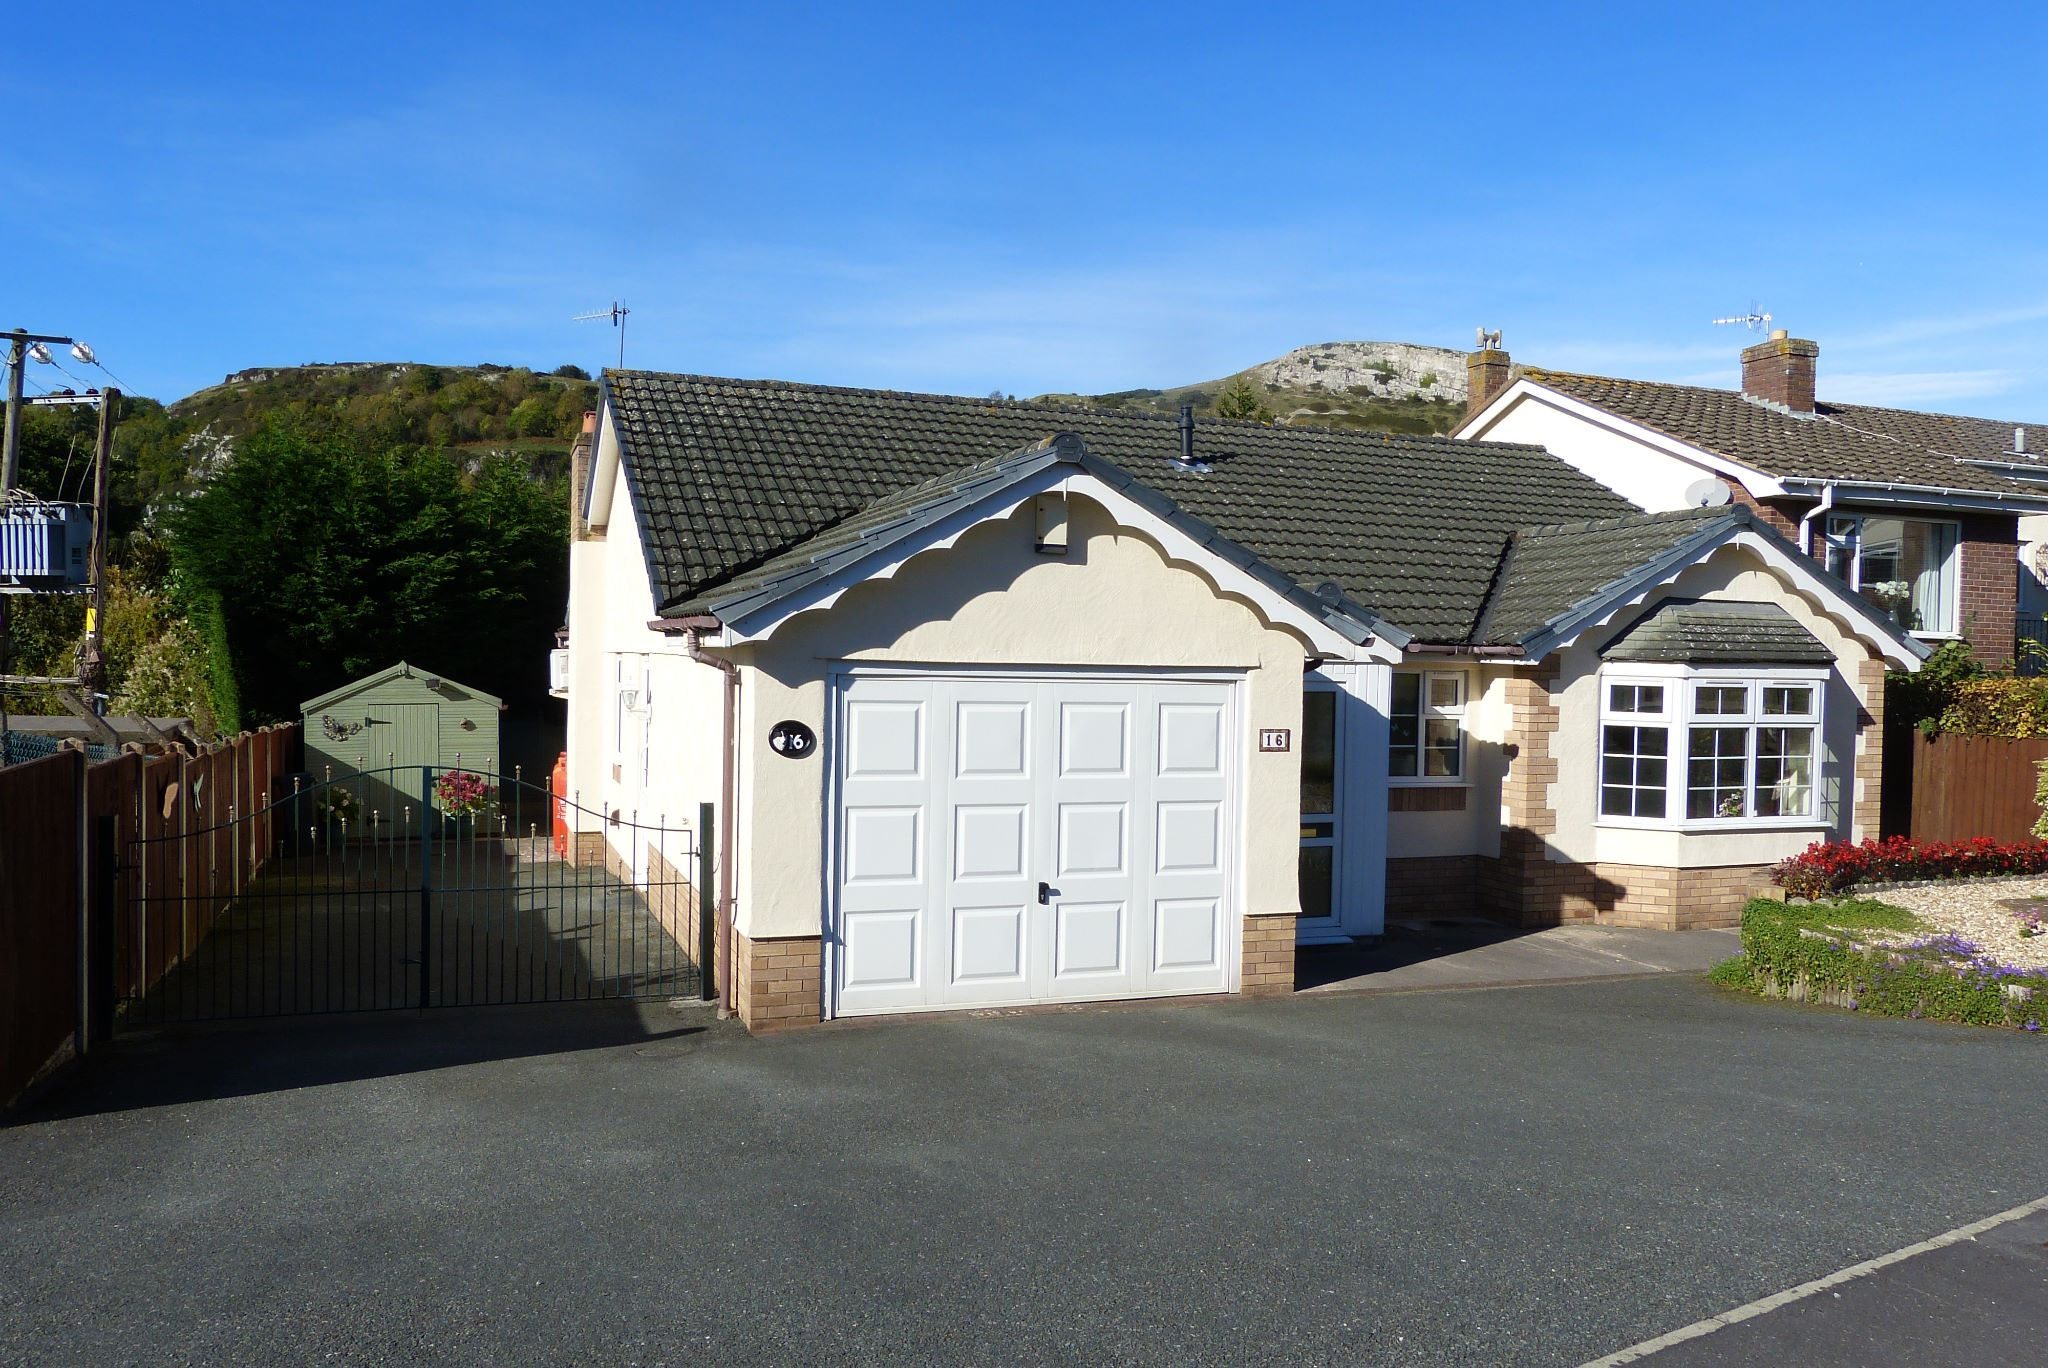 2 bedroom detached bungalow For Sale in Abergele - Photograph 1